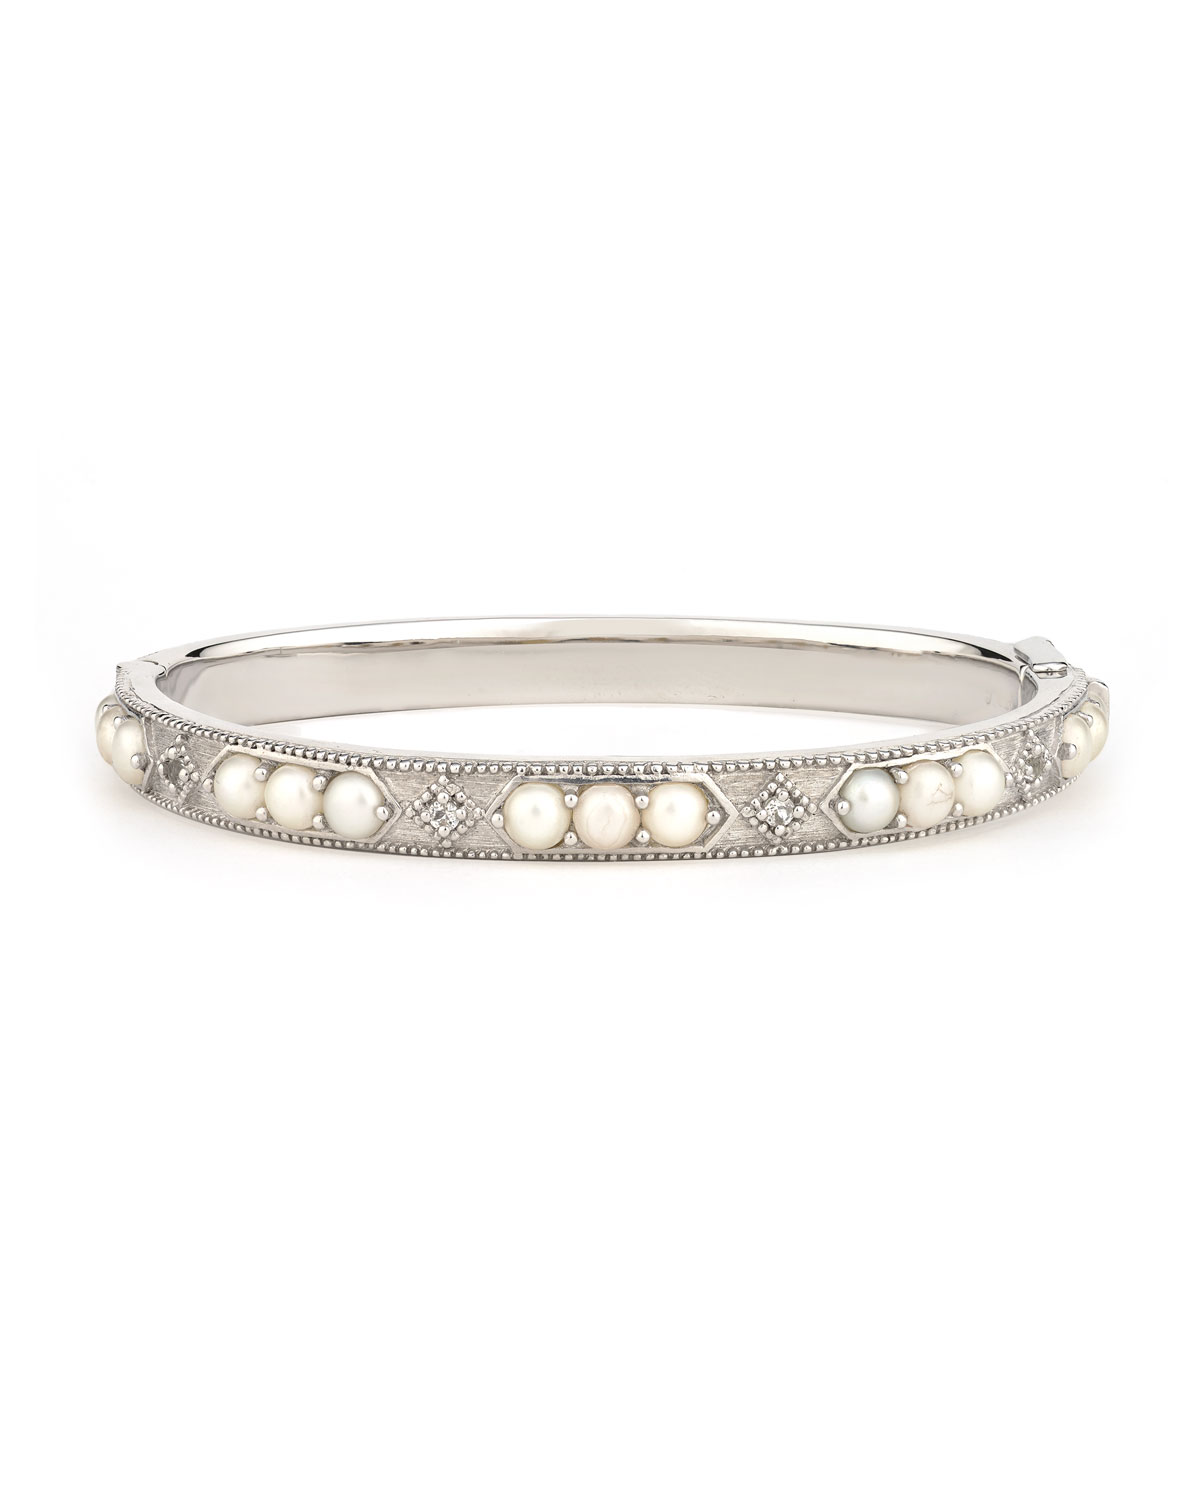 Jude Frances Encore Lisse Sterling Silver Stone Bangle with Labradorite/Quartz Doublet QzyYnfi6S2